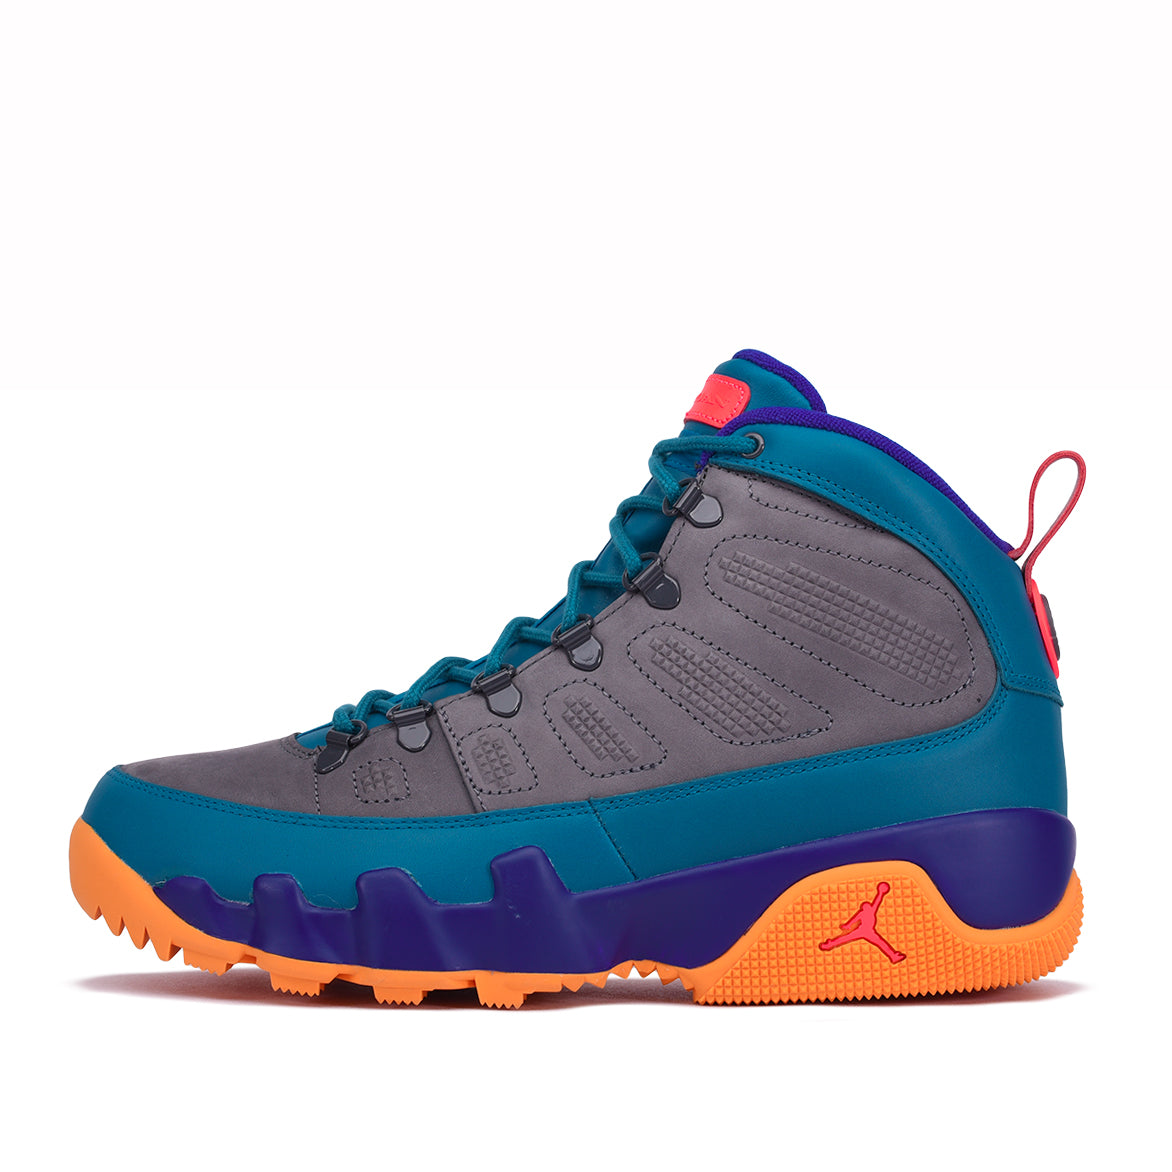 368dfe693fed AIR JORDAN 9 RETRO BOOT NRG